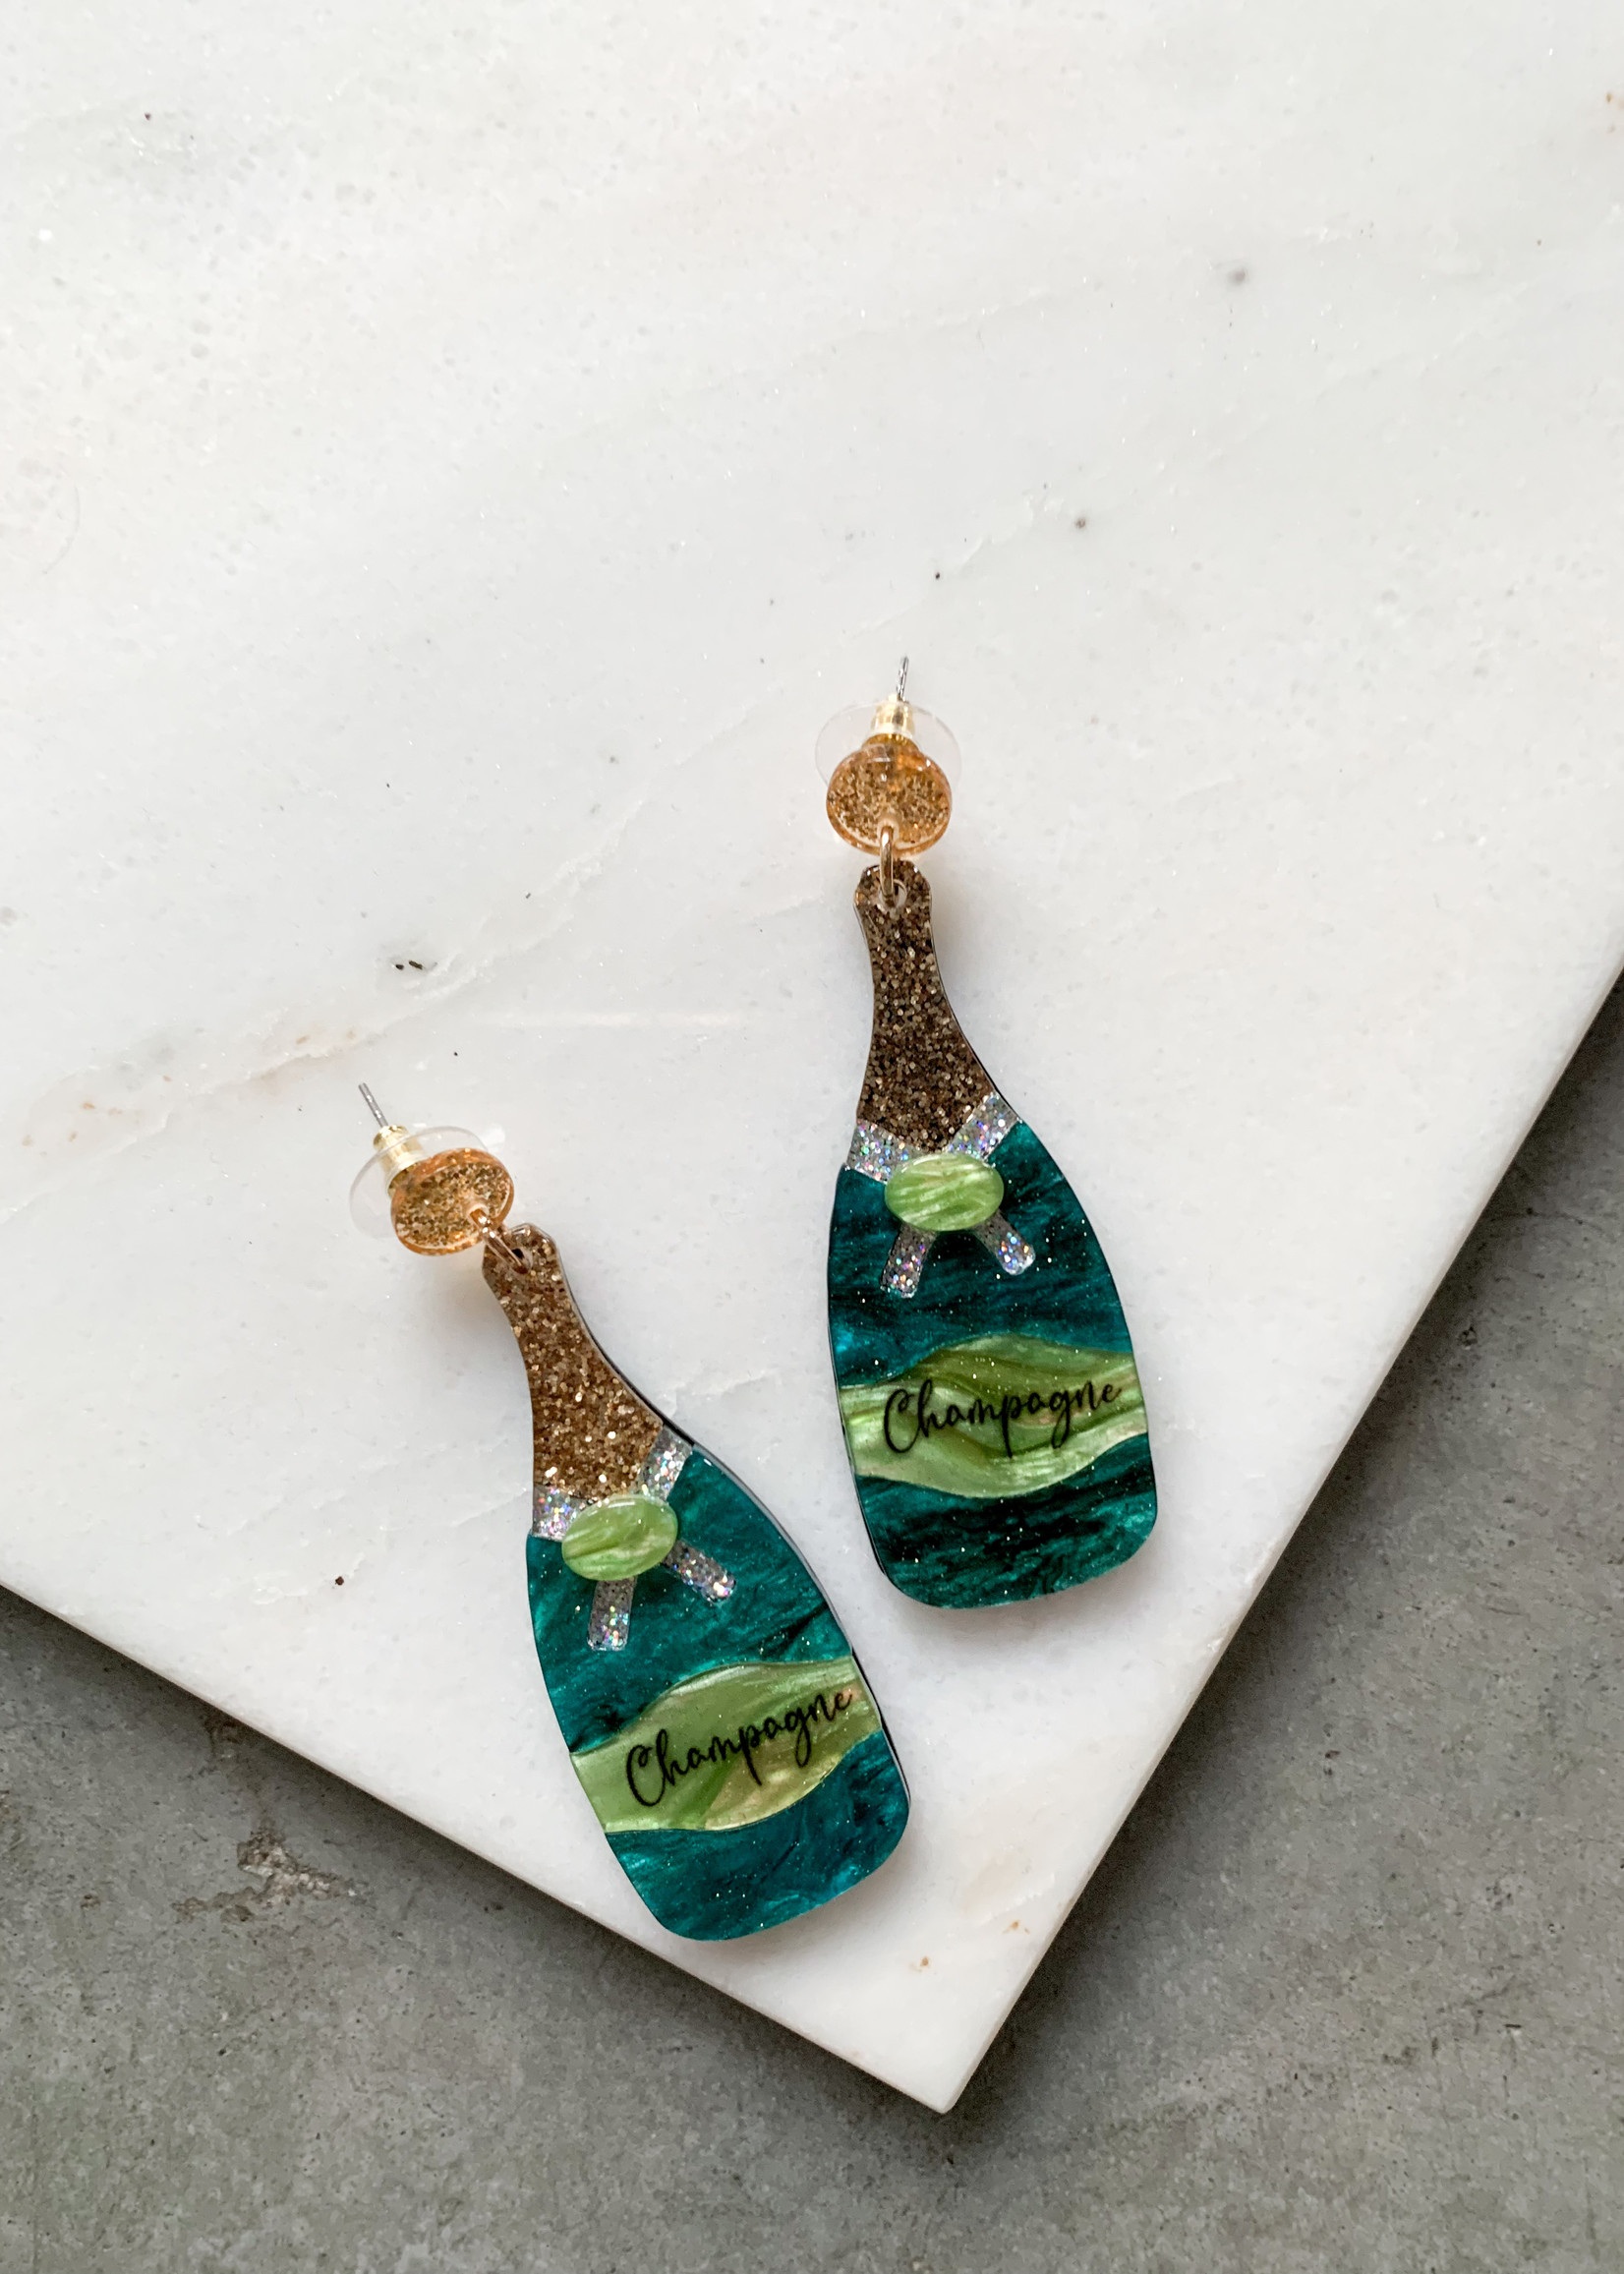 Elitaire Boutique Champagne Acrylic Earrings